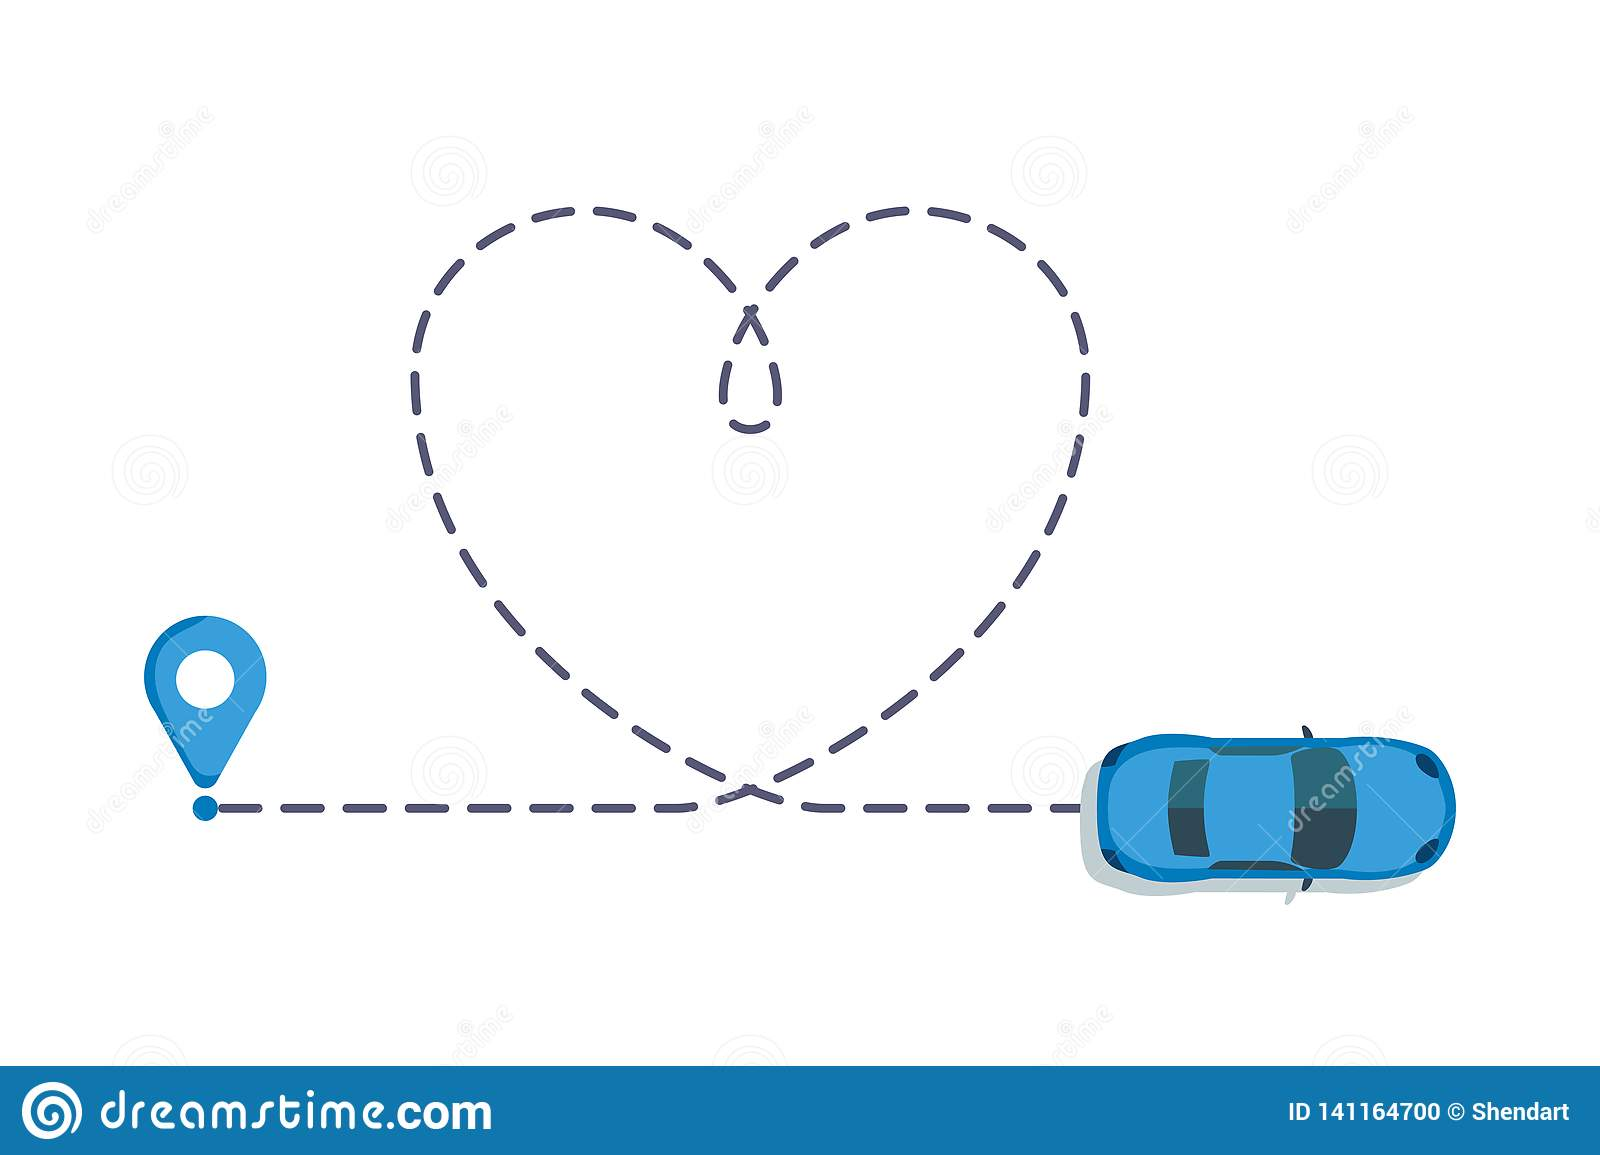 Love Car Route Romantic Travel Heart Dashed Line Trace And Routes